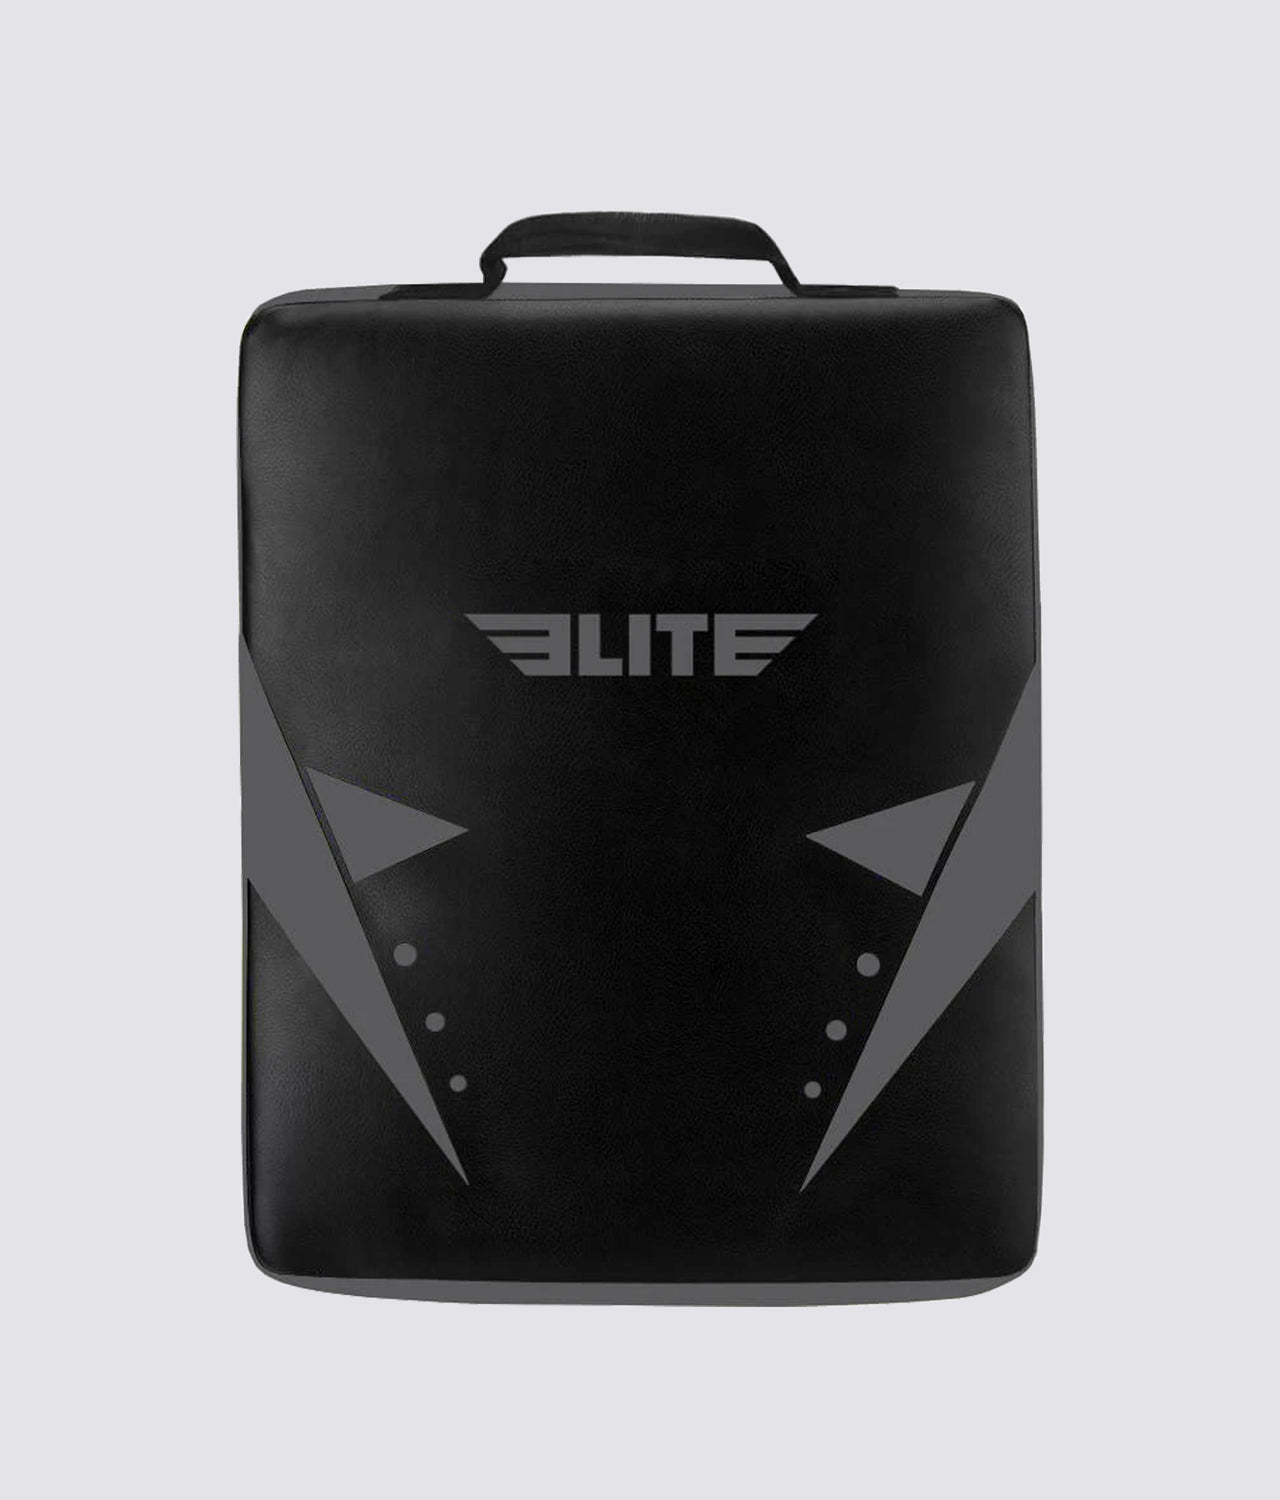 Elite Sports Black/Black Karate Strike Shield Kick Pad